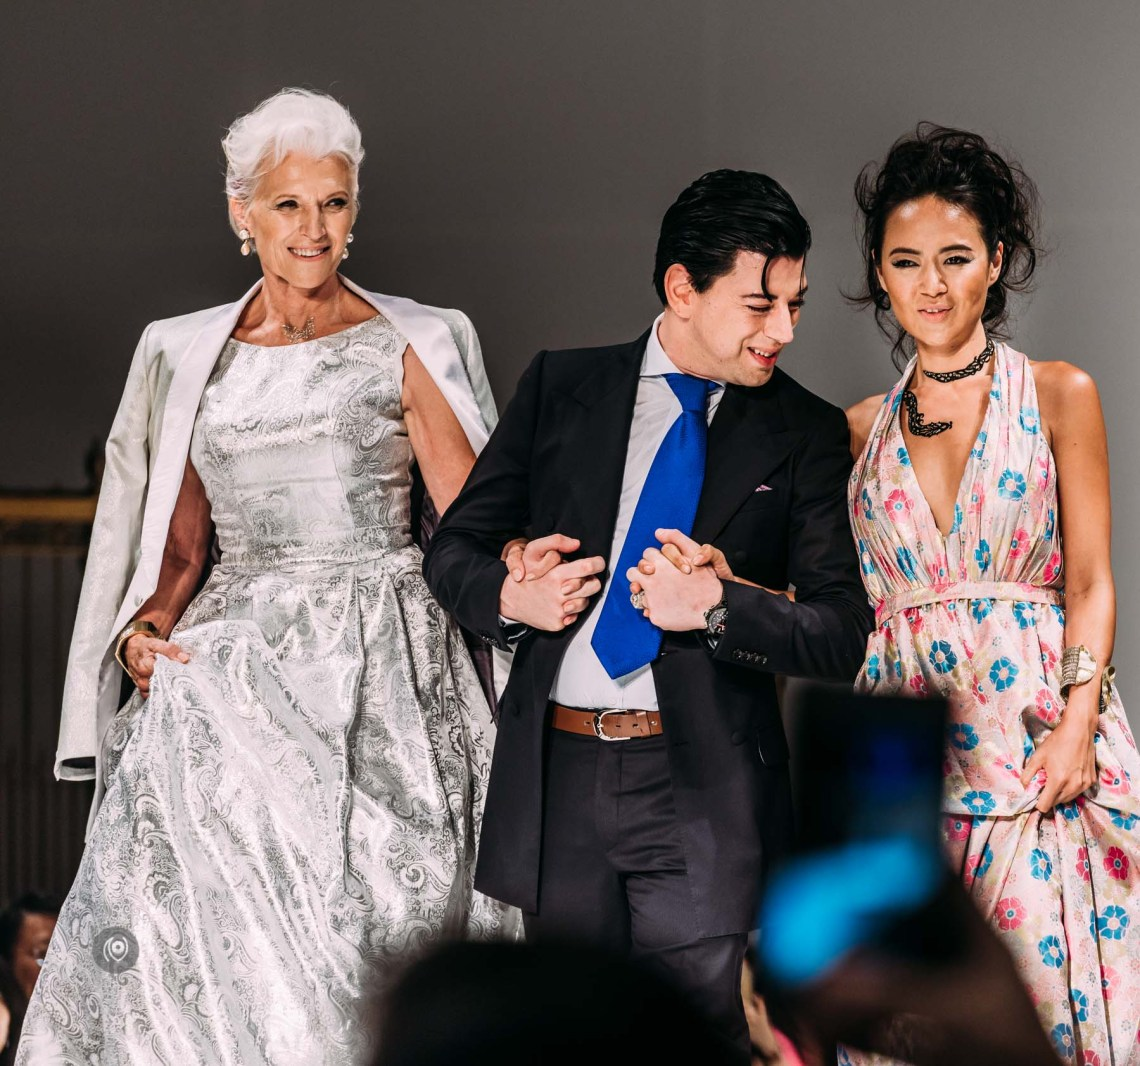 naina.co, naina redhu, maye musk, elon musk mother, 70 years old, model, older model, dietician, nutritionist, malan breton, new york fashion week, NYFW, september 2015, new york, new york city, NCY, fashion week, runway, ramp, photographer, content queen, eyesforcontent, fashion model, elon musk, luxury, lifestyle, blogger, content creator